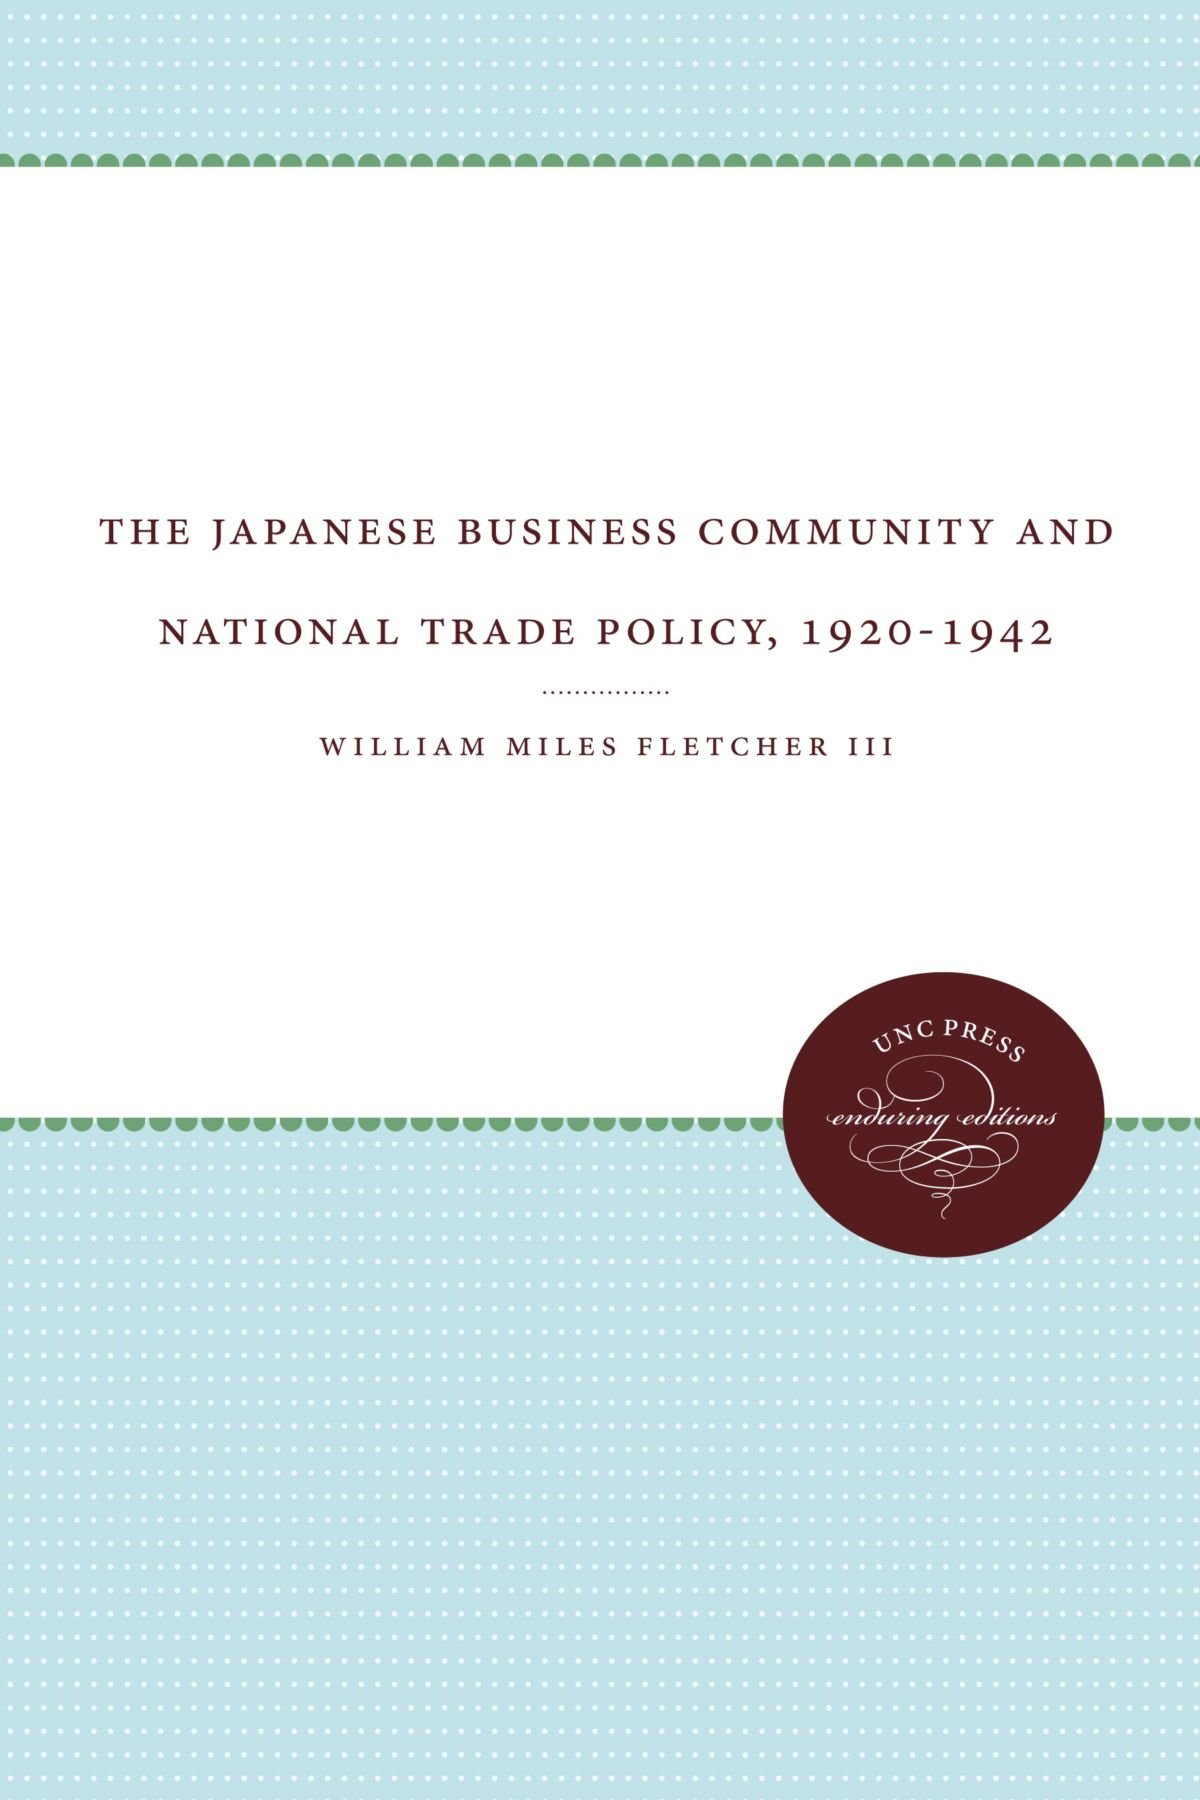 Download The Japanese Business Community and National Trade Policy, 1920-1942 (Unc Press Enduring Editions) pdf epub